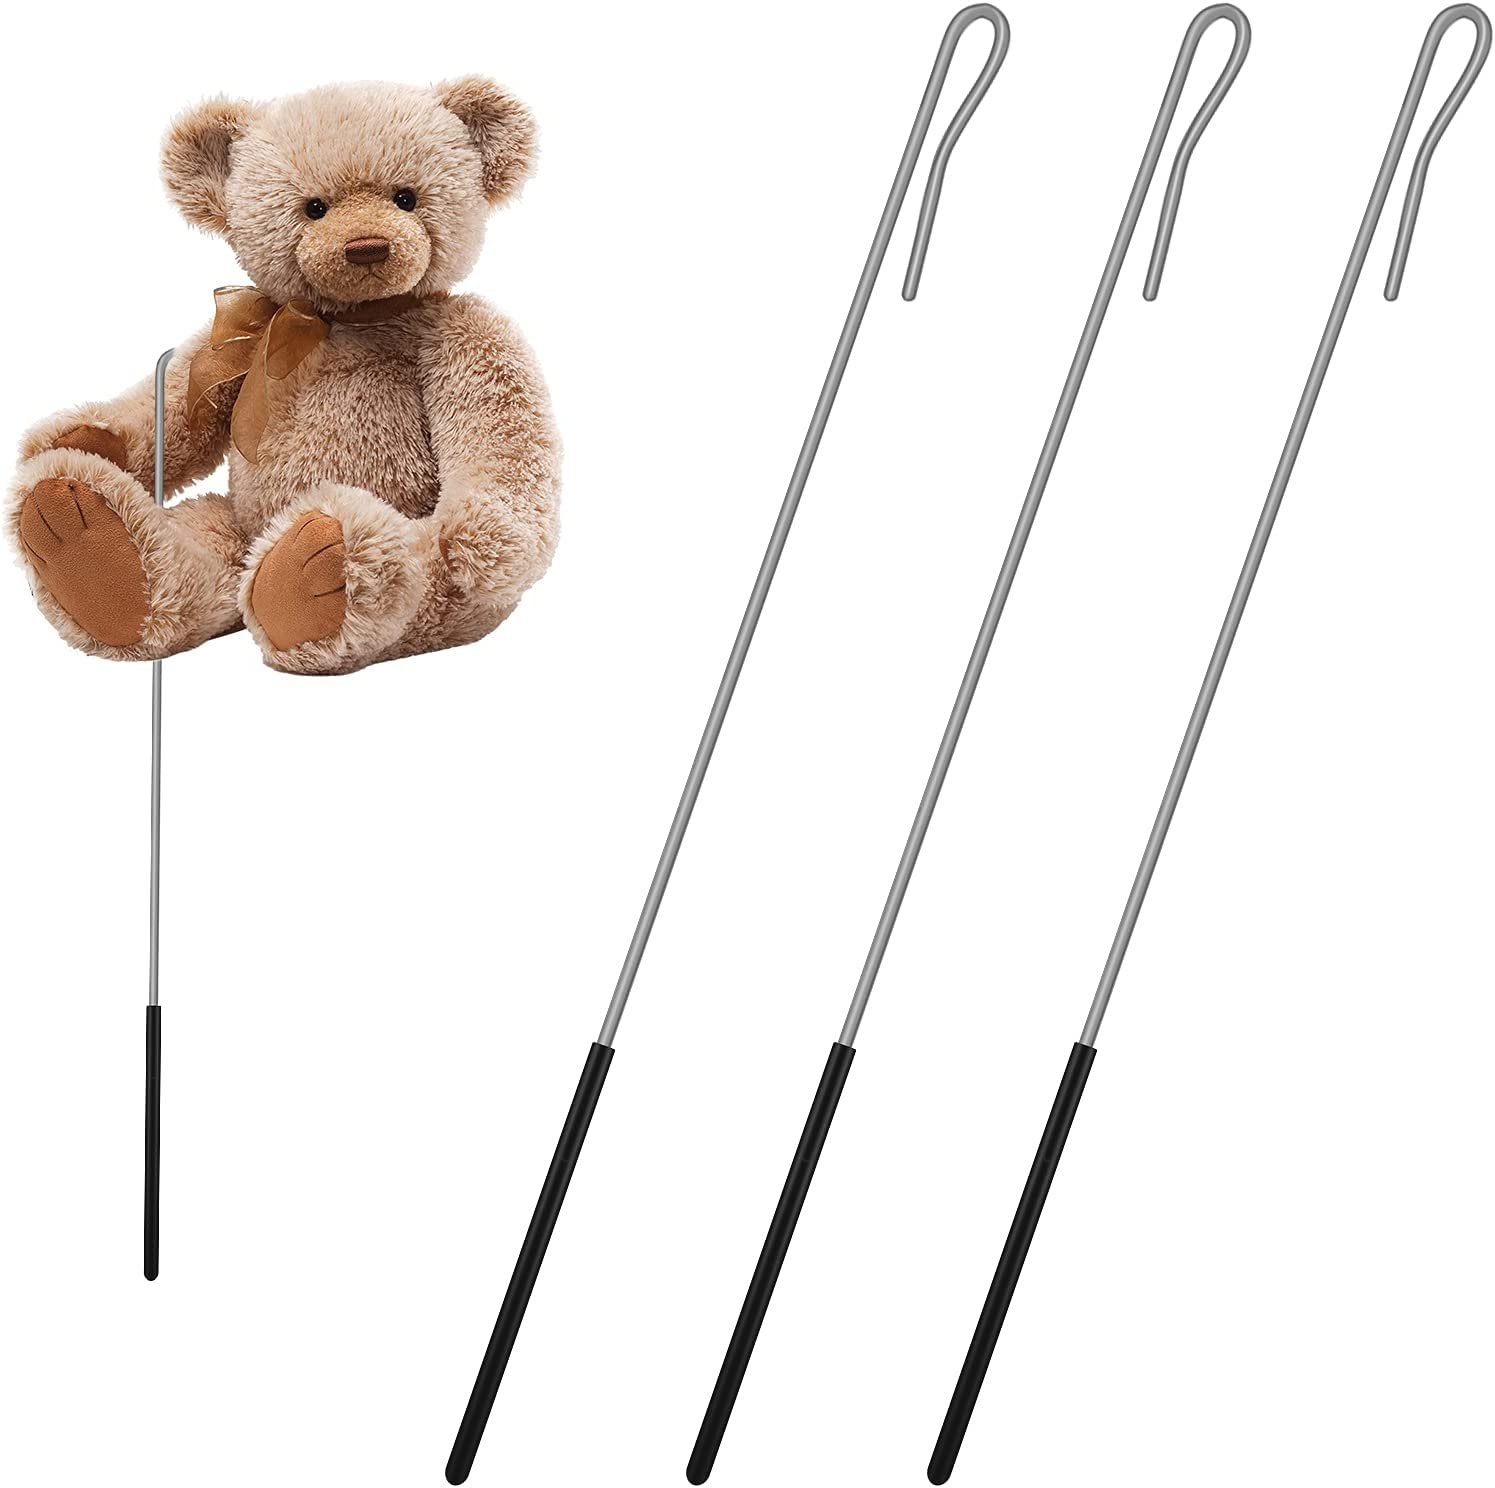 Now free shipping 3 Max 81% OFF Packs Puppets Arm Control Ro Handles Accessory Rod